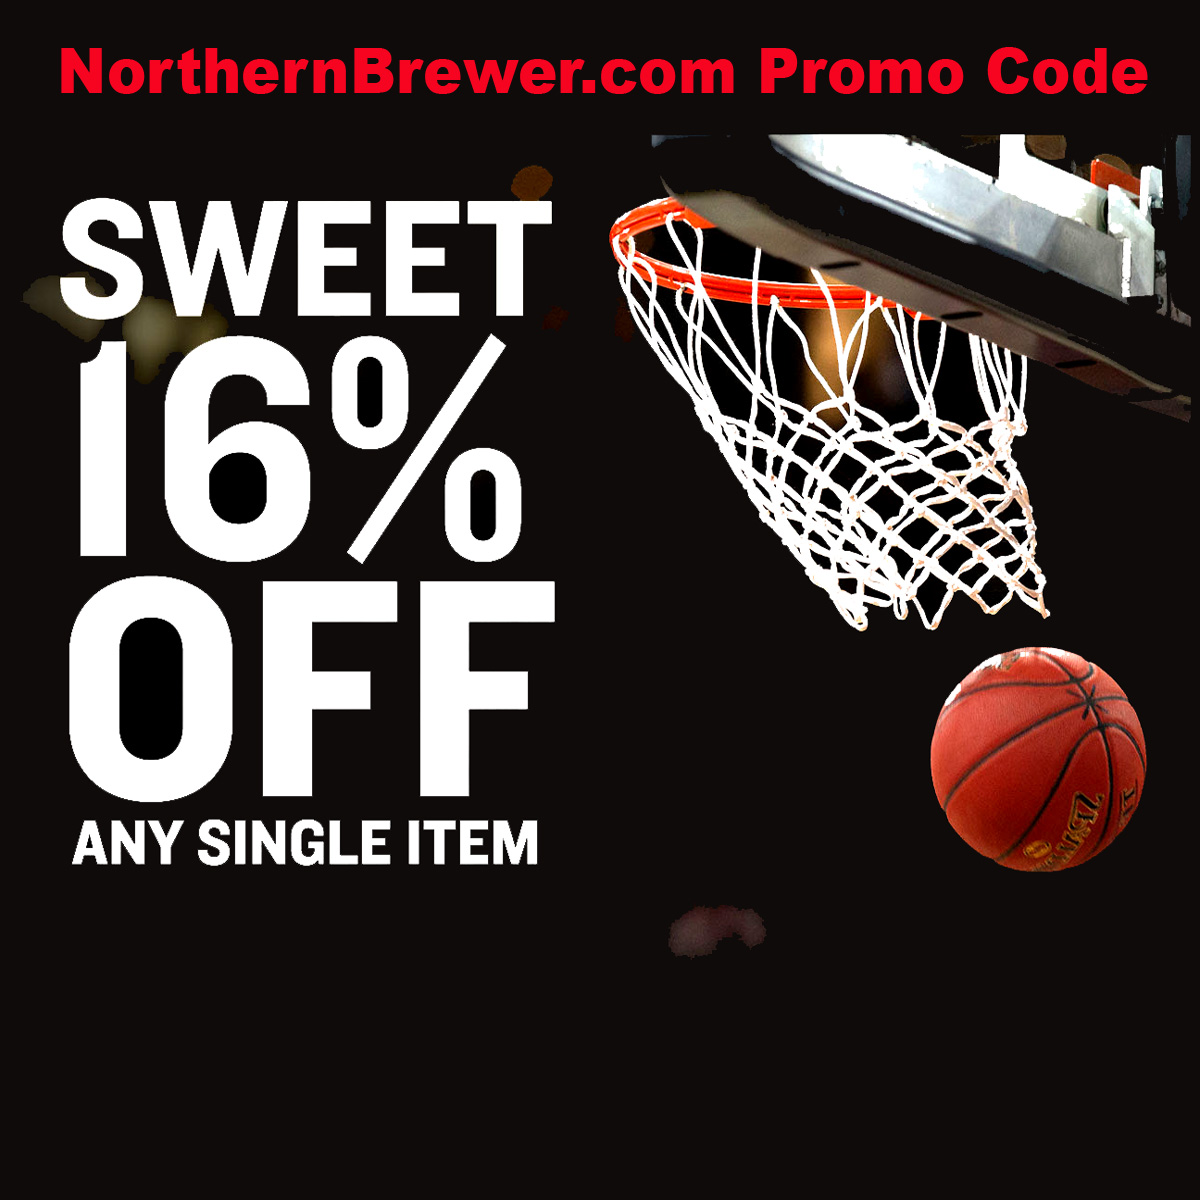 Home Wine Making Coupon Codes for Save 16% On Any Northern Brewer Item With This NorthernBrewer.com Promo Code Coupon Code